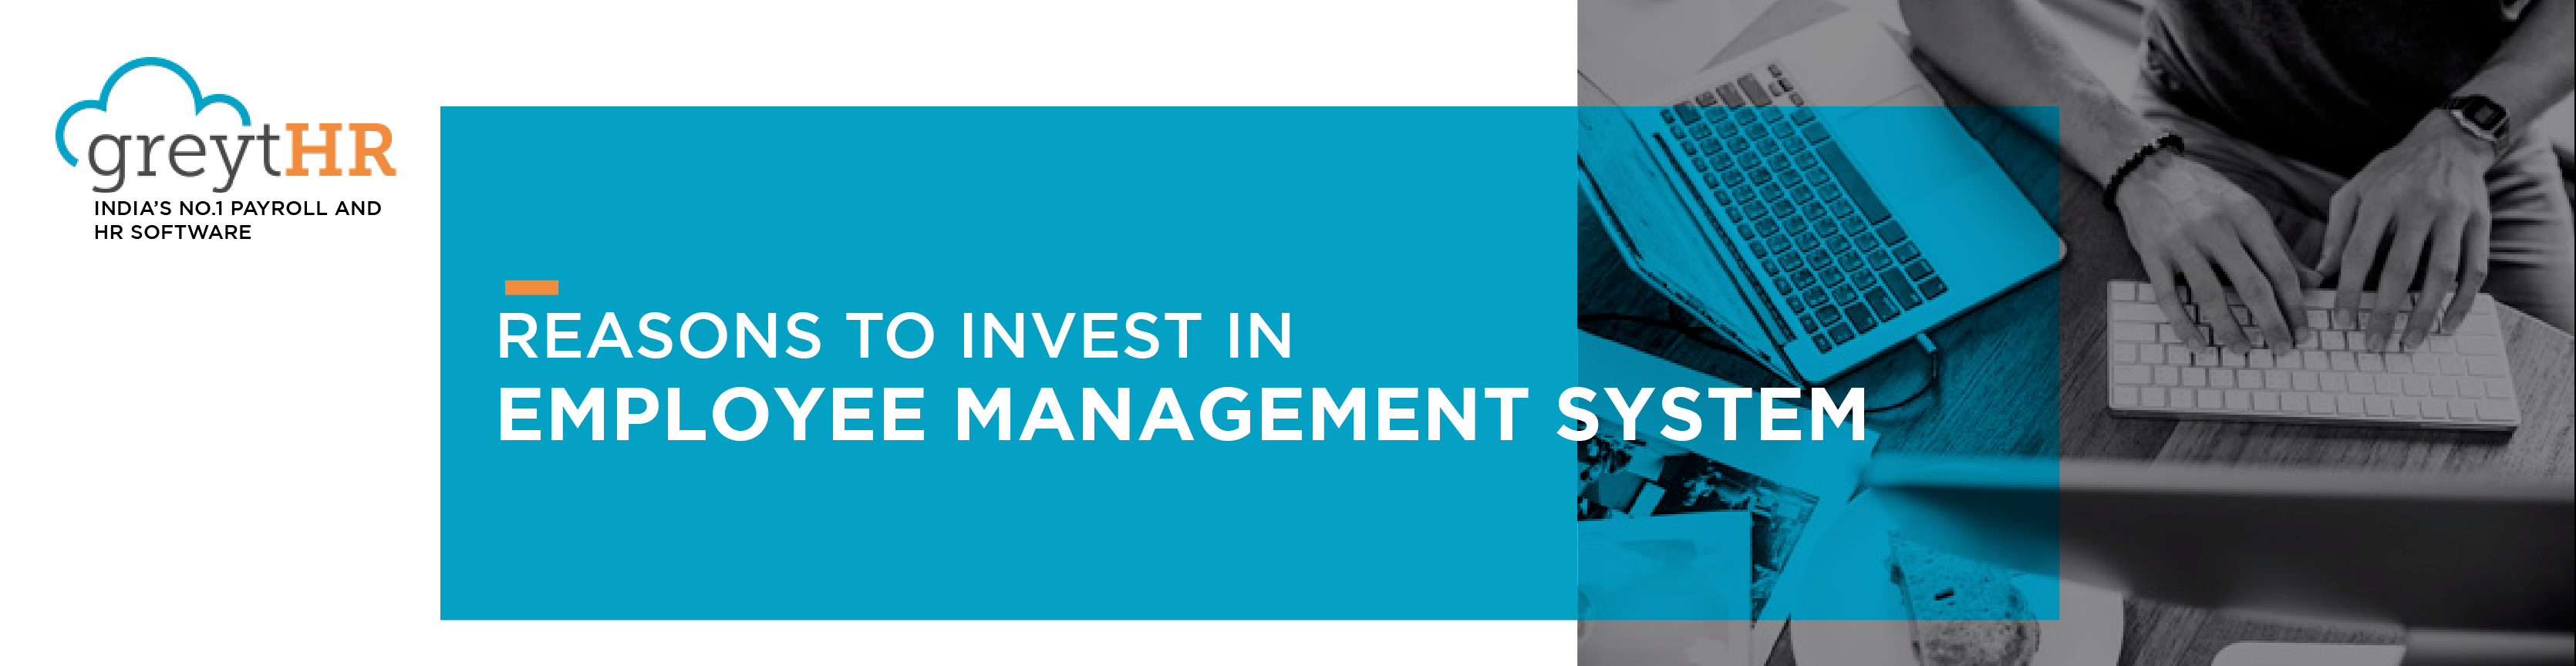 Reasons to Invest in Employee Management System